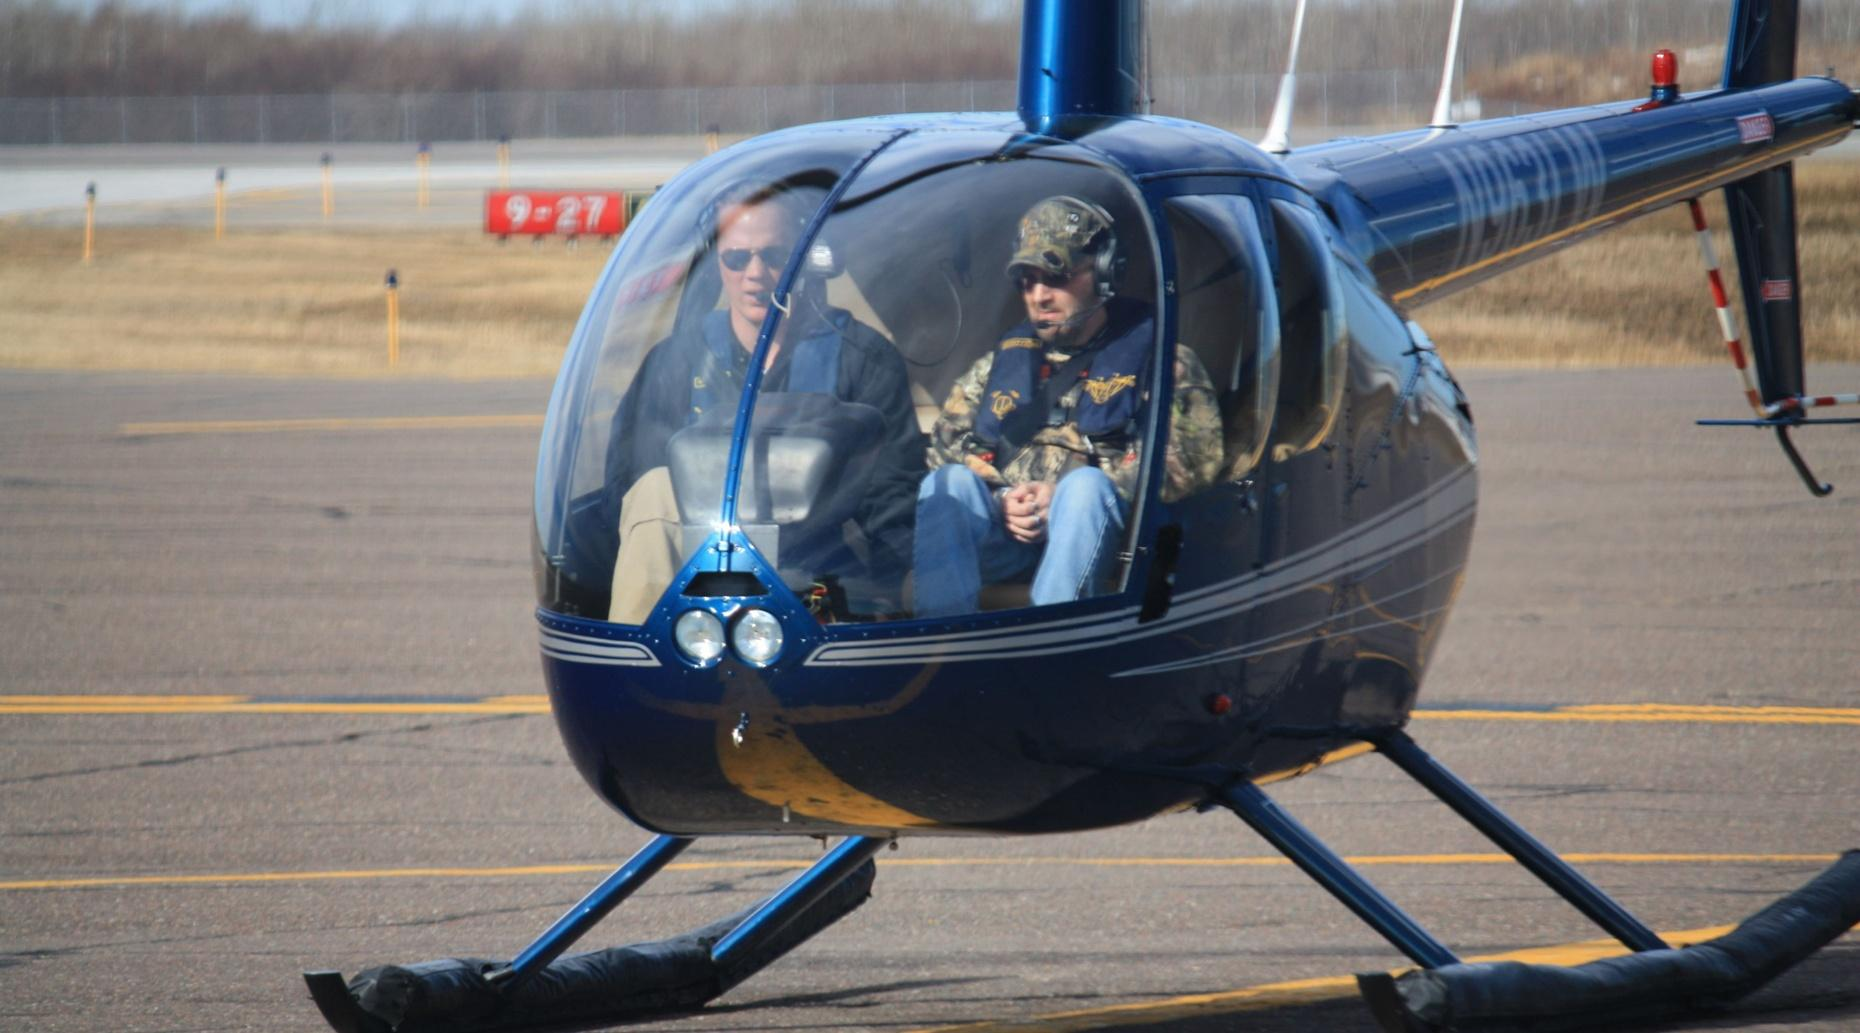 2-Mile Helicopter Tour